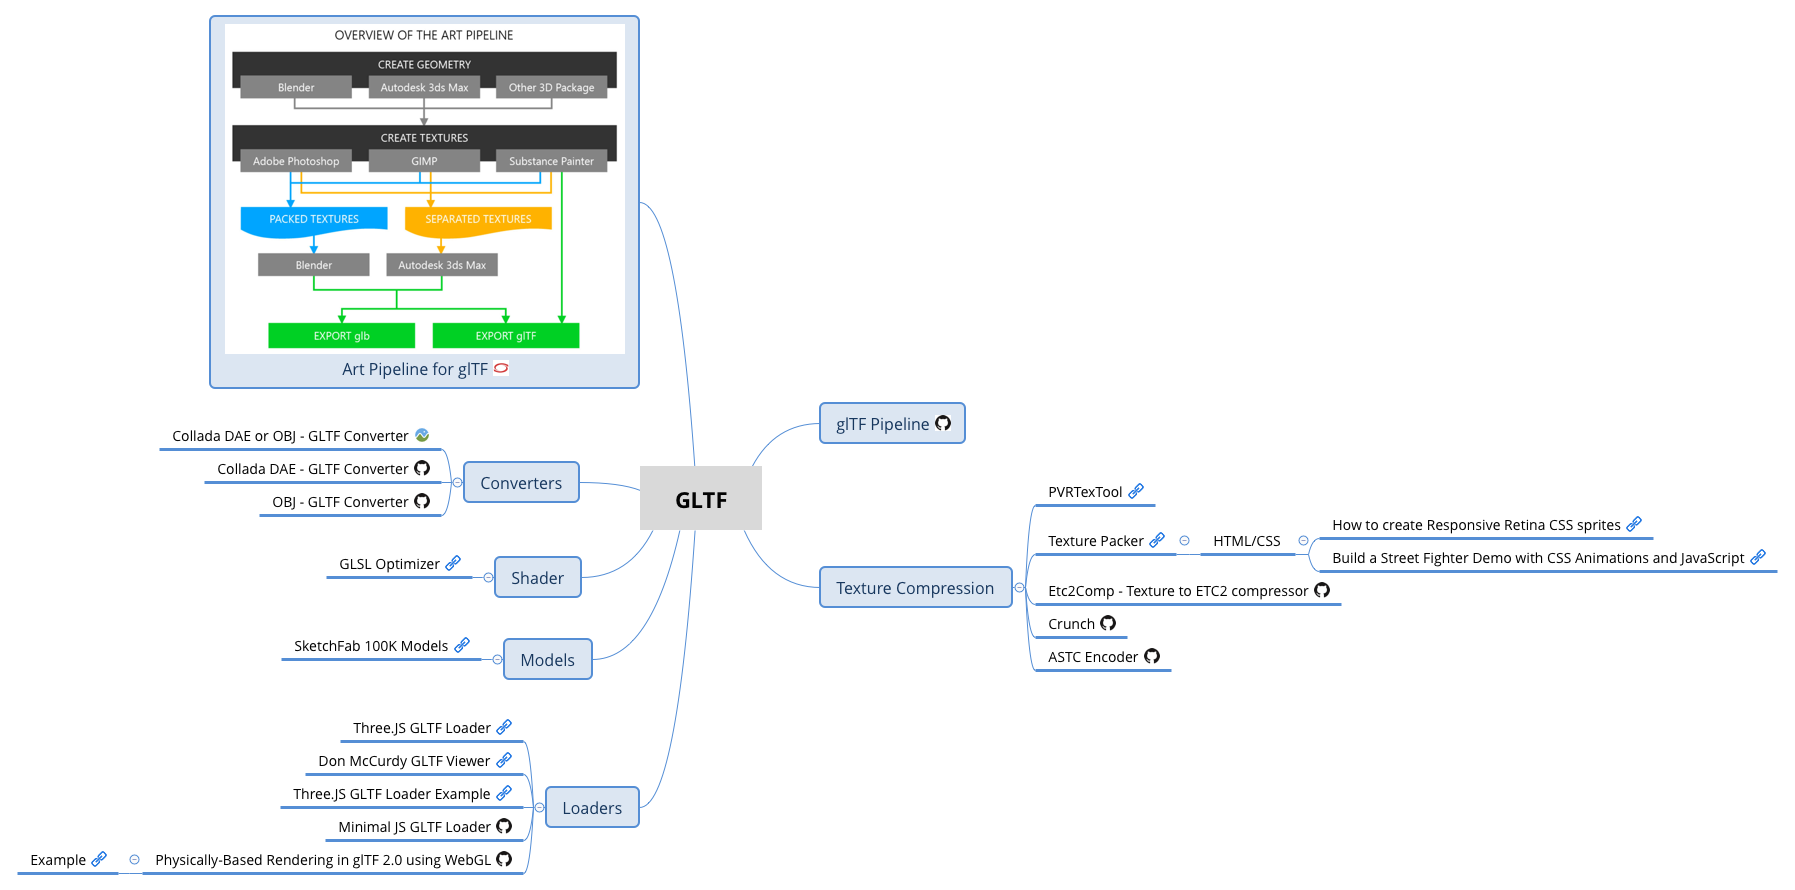 GLTF - XMind - Mind Mapping Software